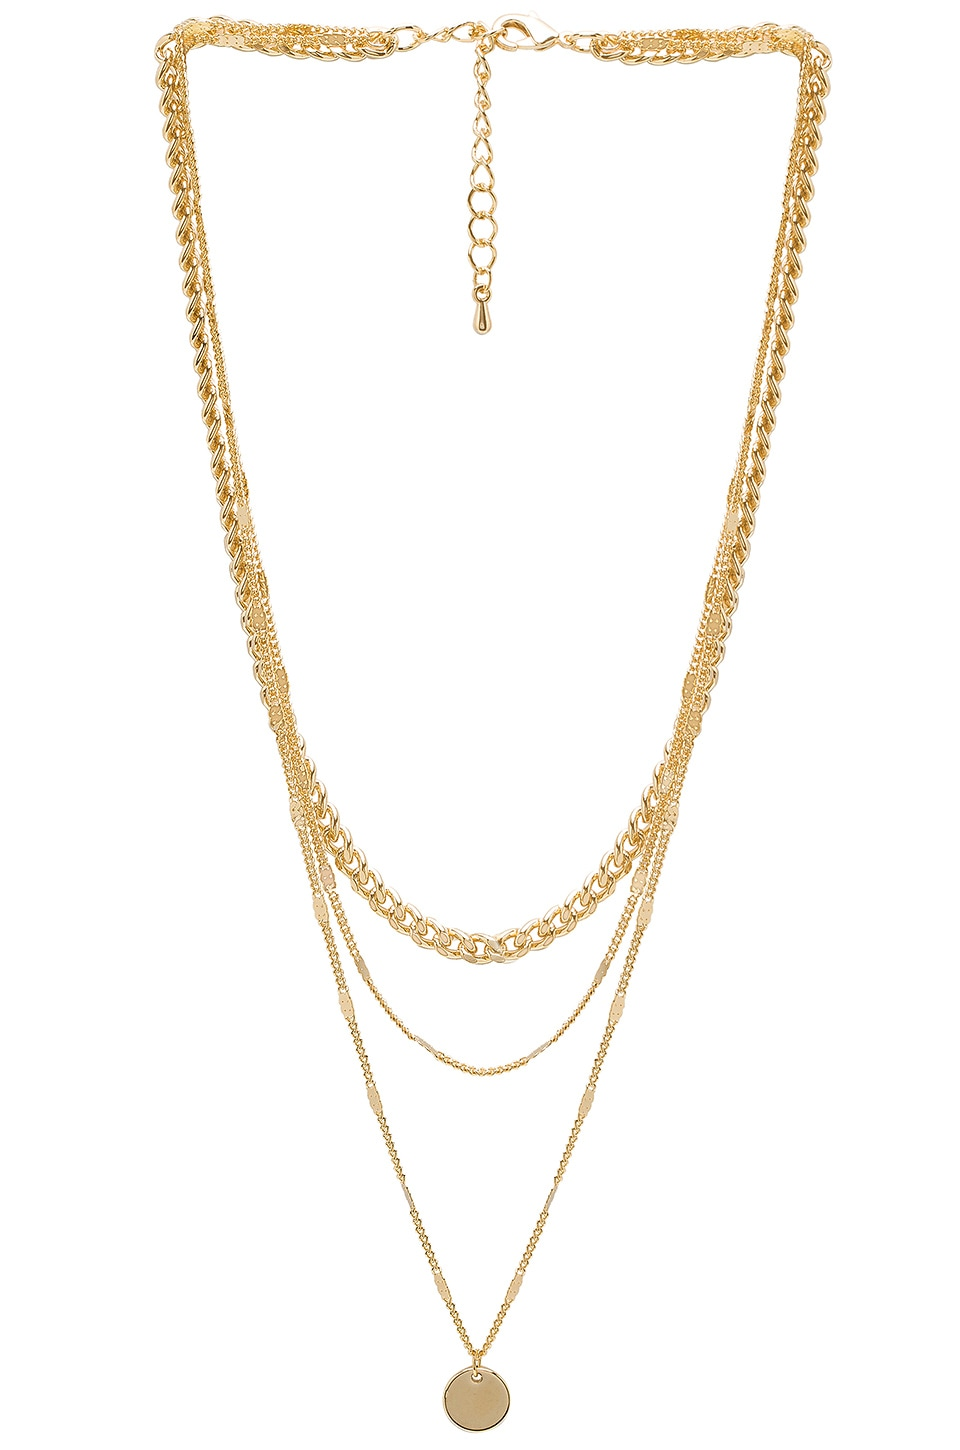 8 OTHER REASONS ABBEY NECKLACE